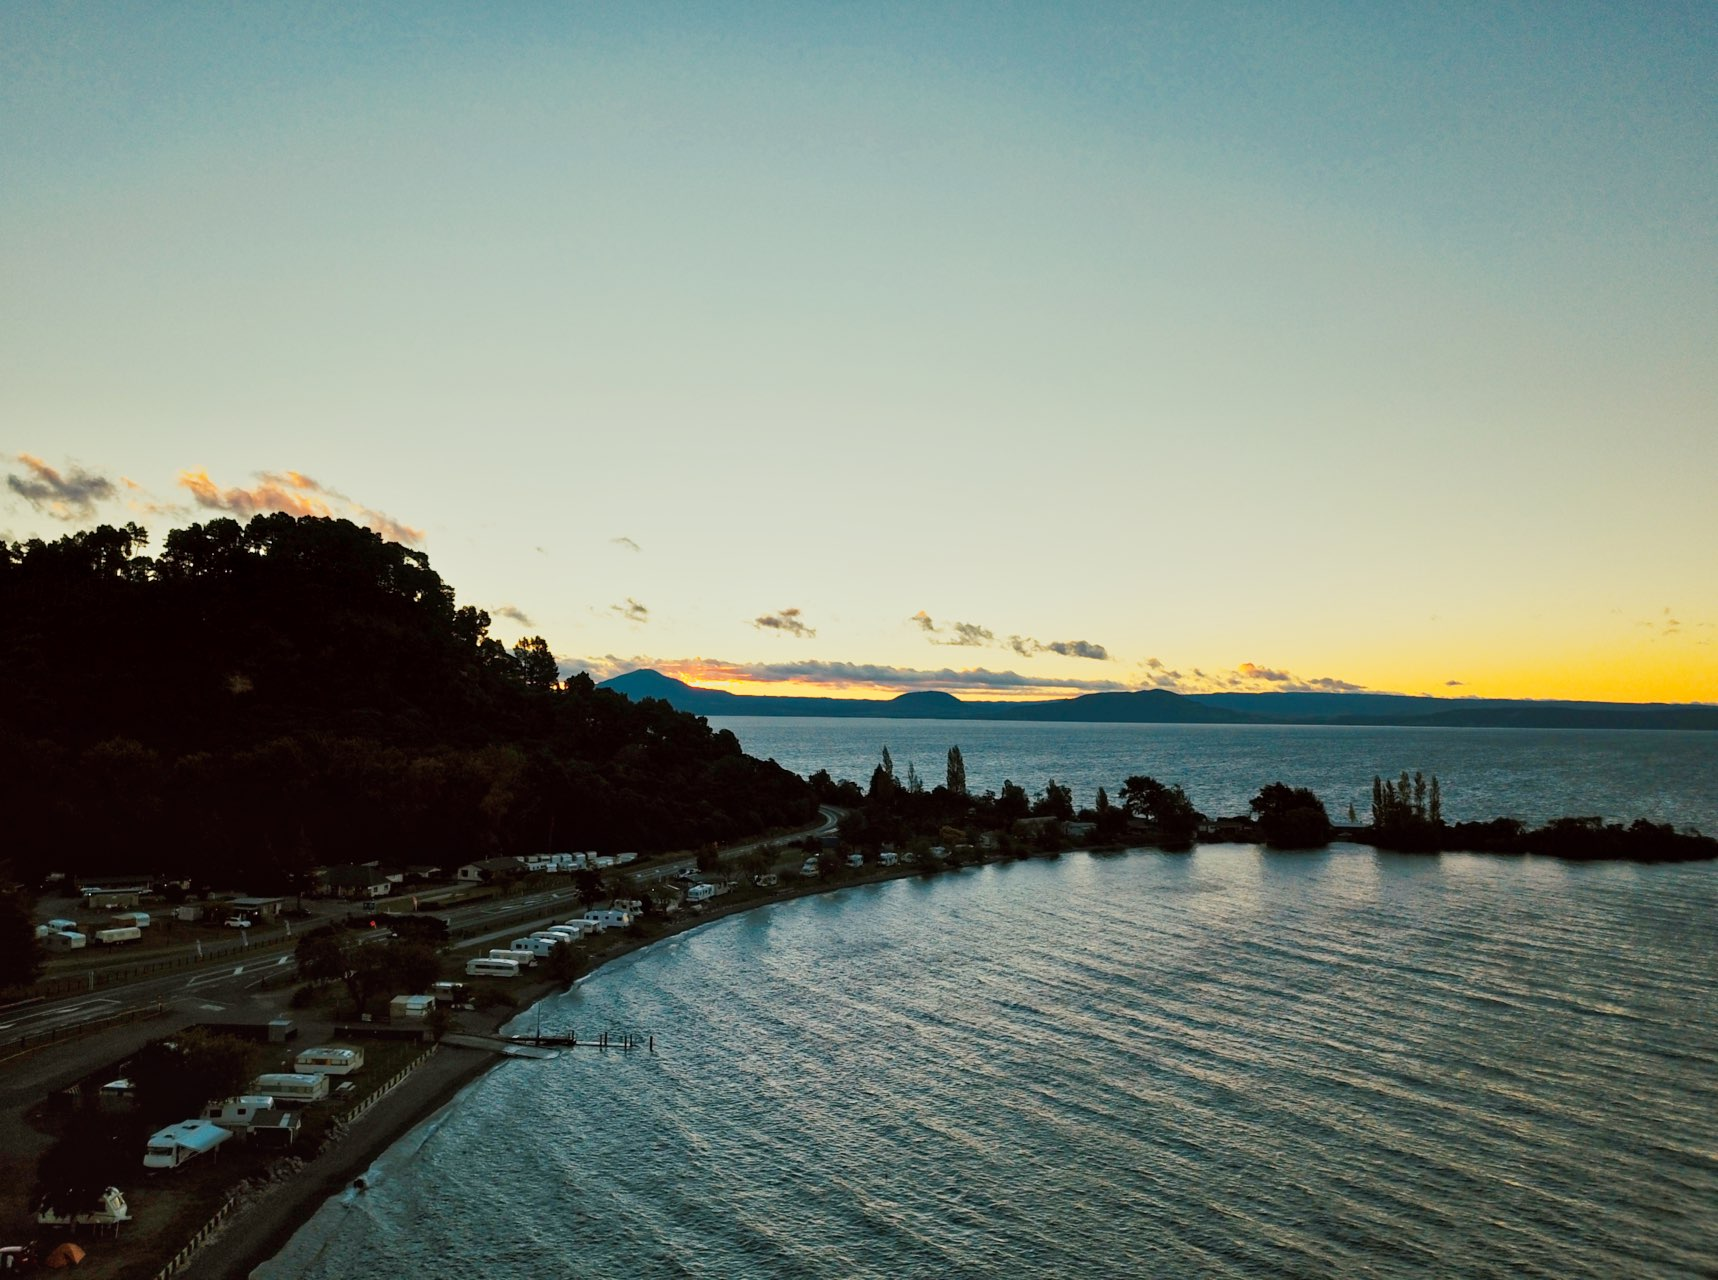 Sunset Lake Taupo New Zealand